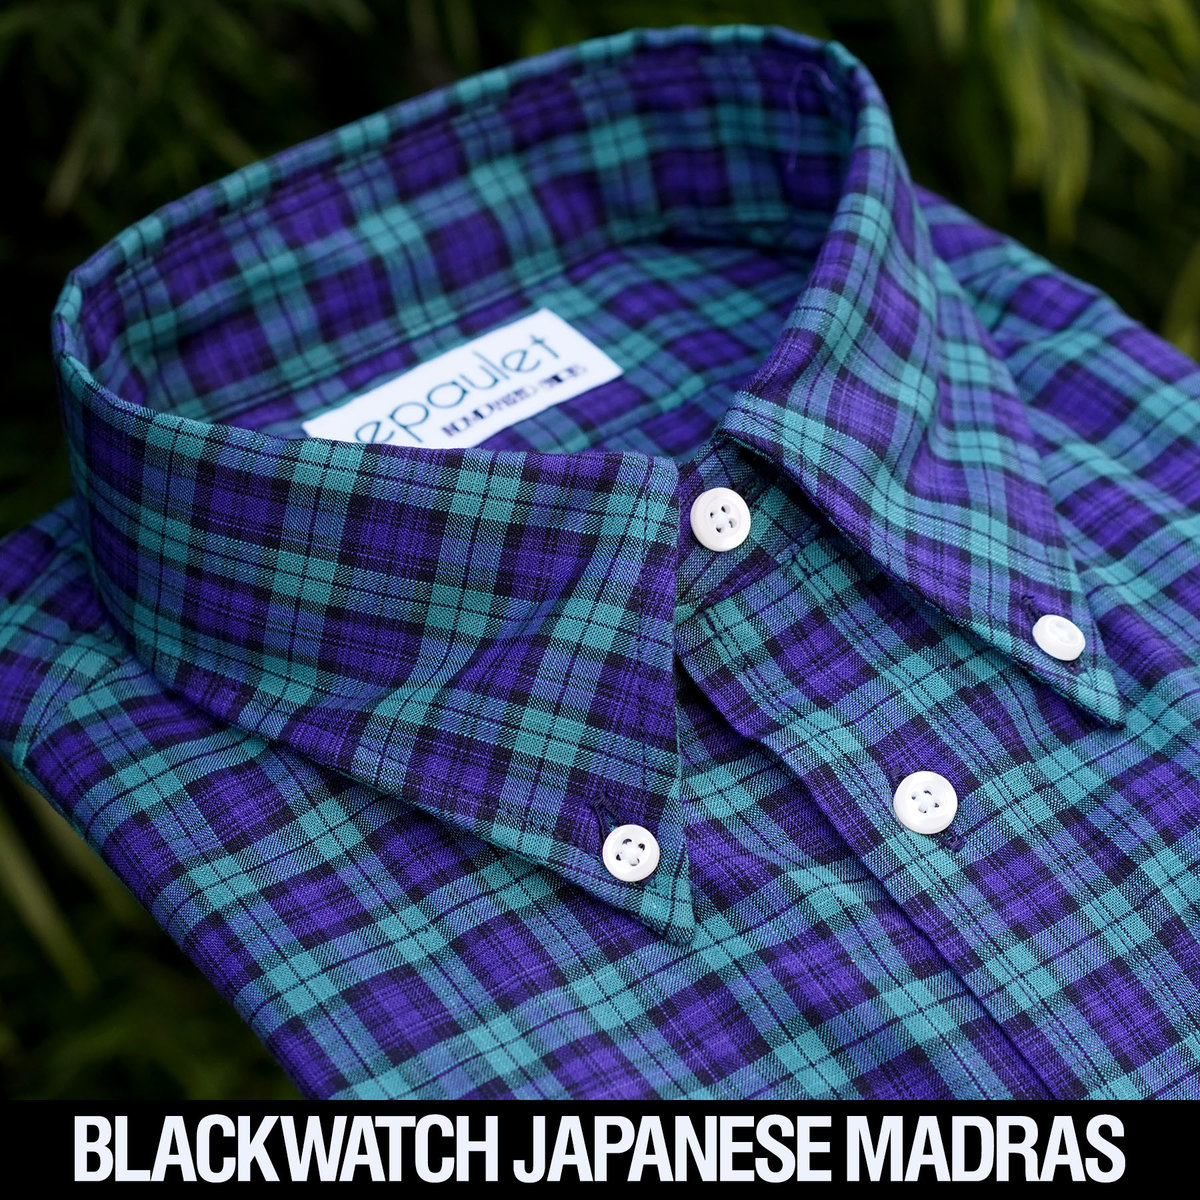 Blackwatch Japanese Madras.jpg